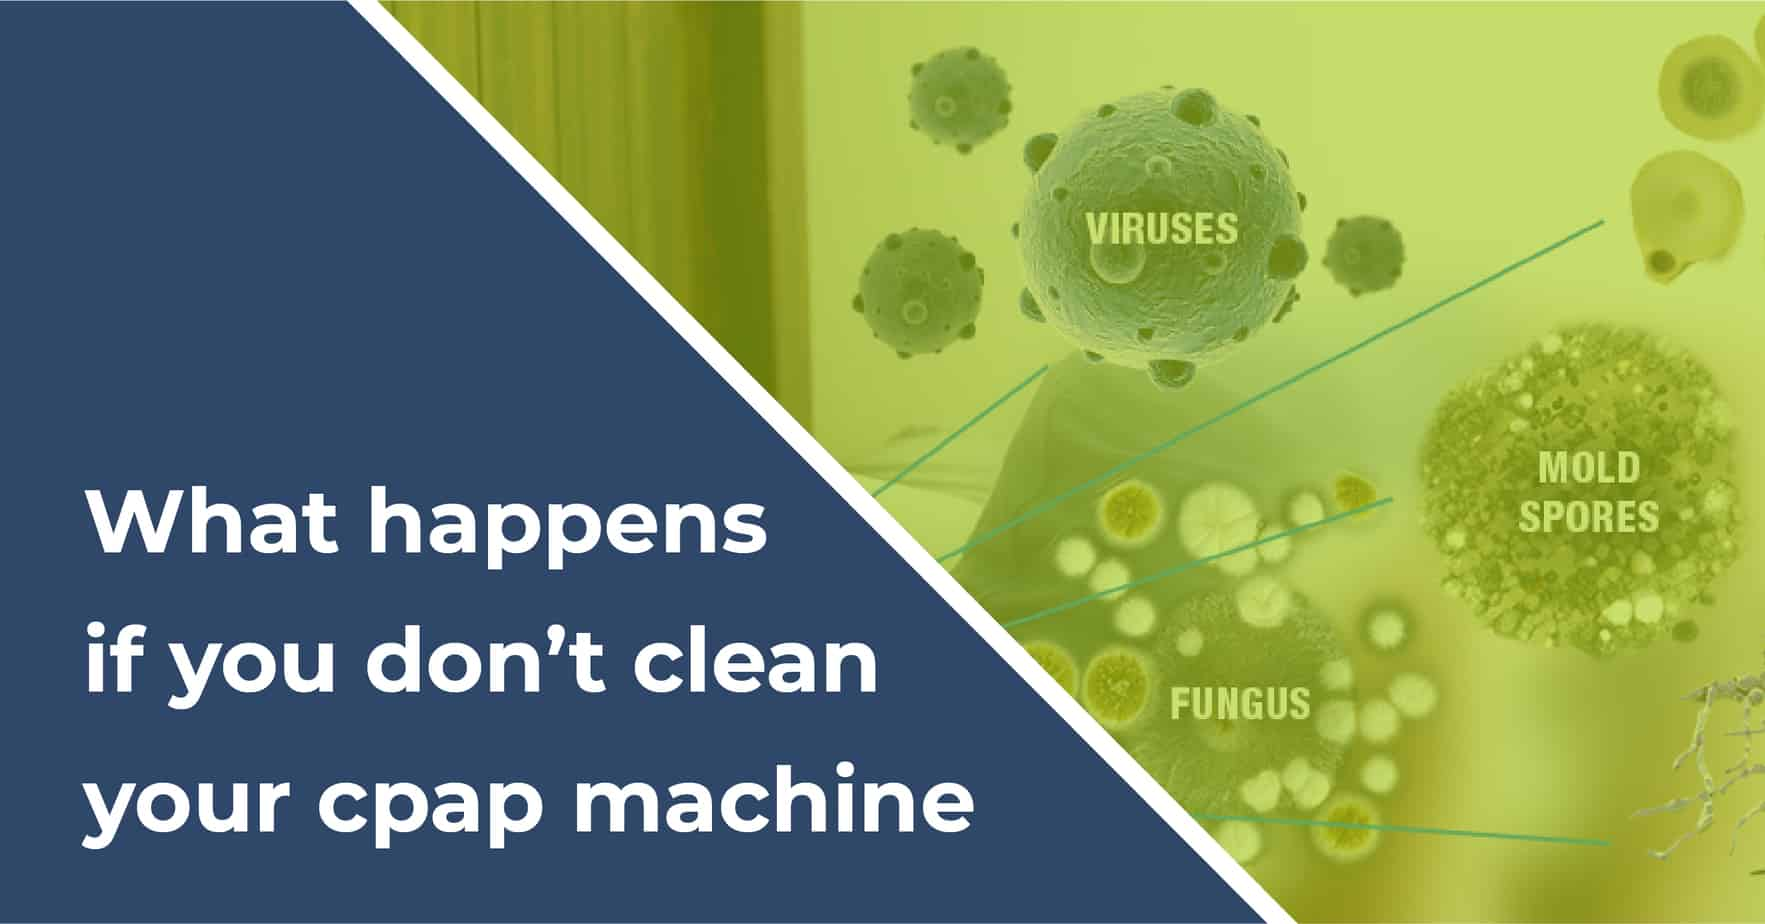 what happens if you don't clean your cpap machine